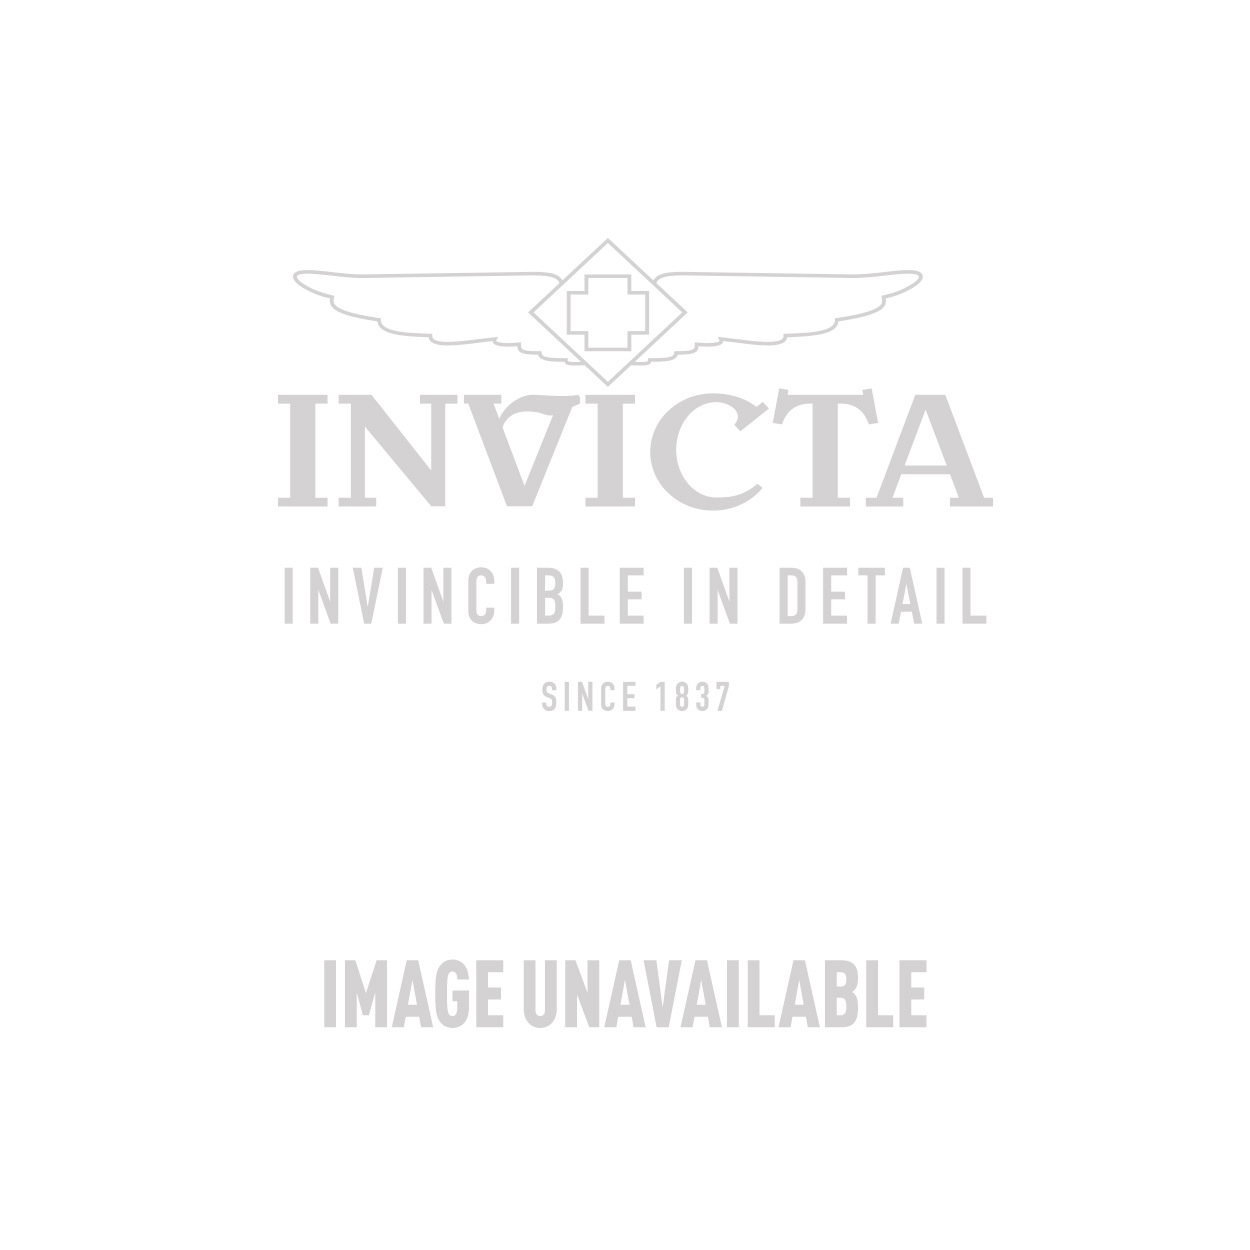 Invicta I-Force Quartz Watch - Stainless Steel case with Black tone Stainless Steel, Rifle band - Model 18693